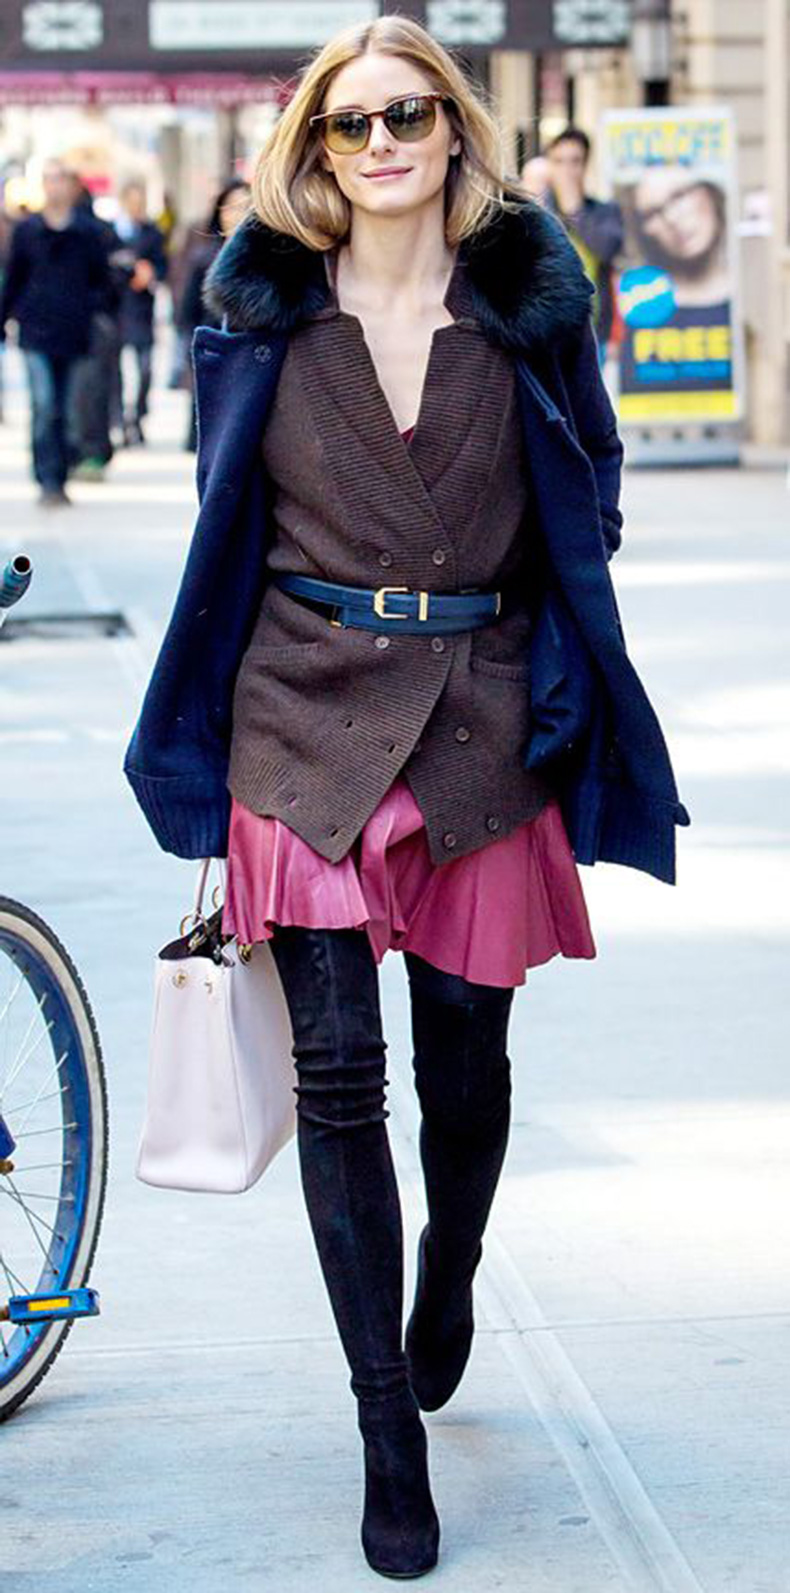 olivia-palermo-belted-cardigan-pleated-skirt-over-the-knee-boots-fur-jacket-winter-fall-via-instyle.com_